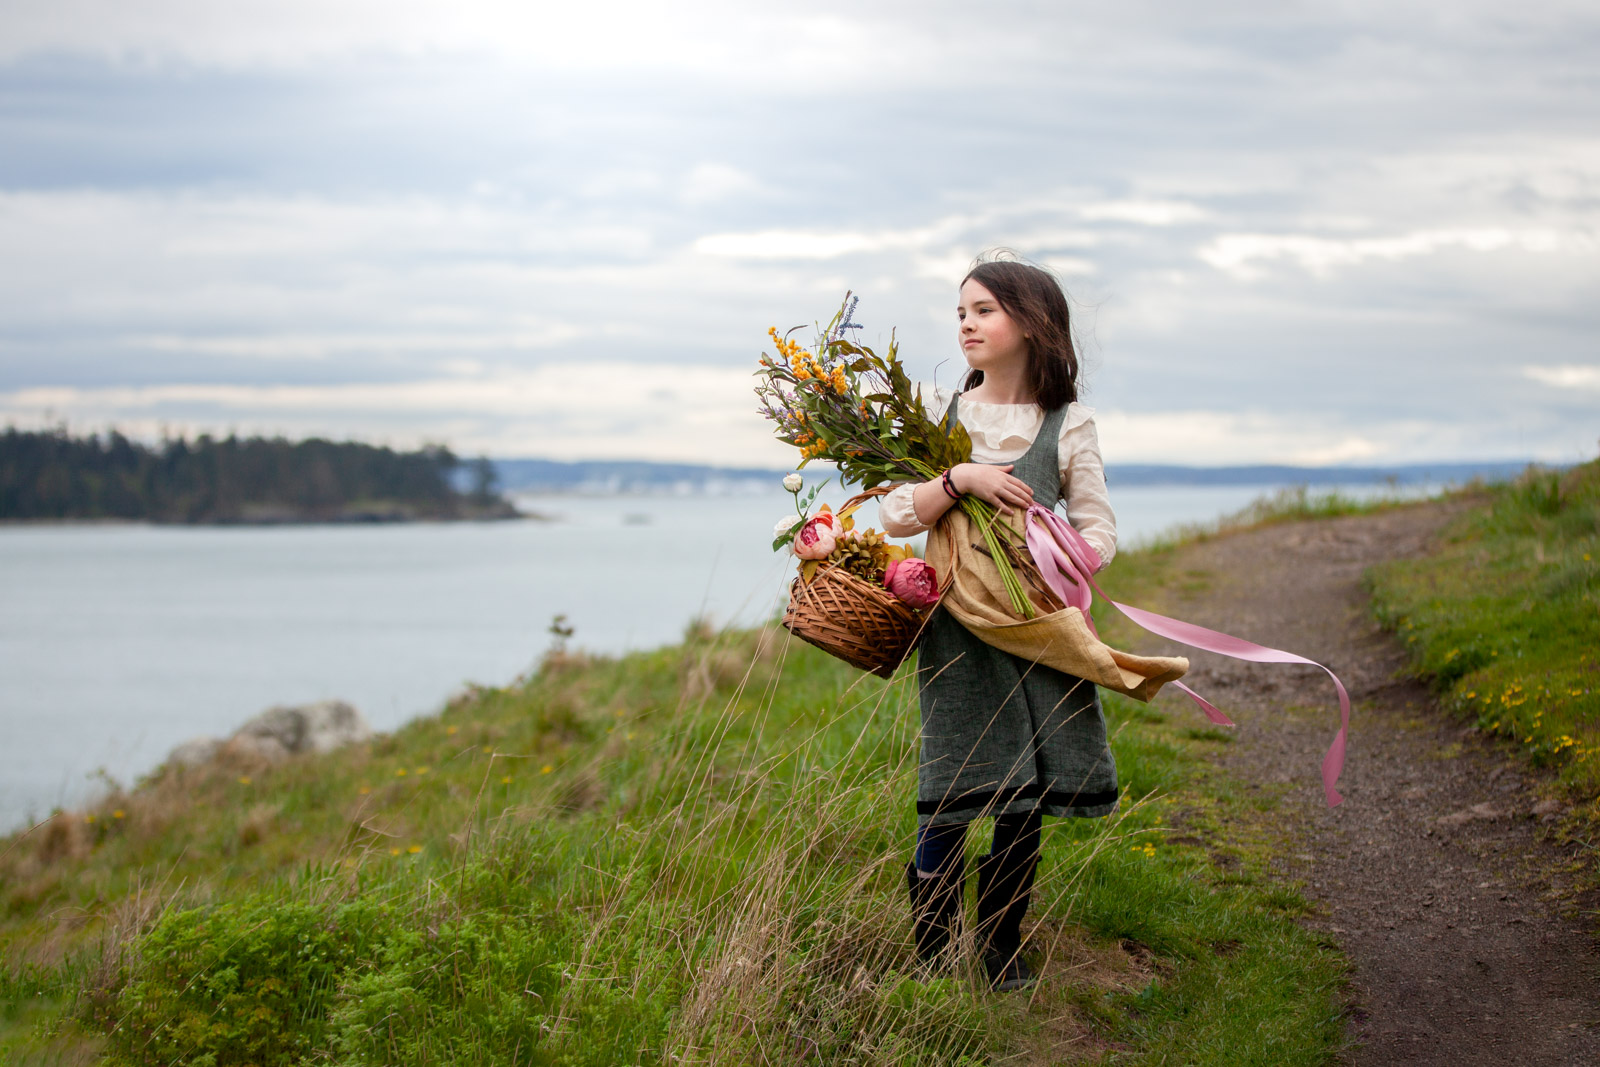 girl-holding-flowers-and-basket-in-grey-dress-jilly-atlanta-cliffs-and-flowers-the-salted-image